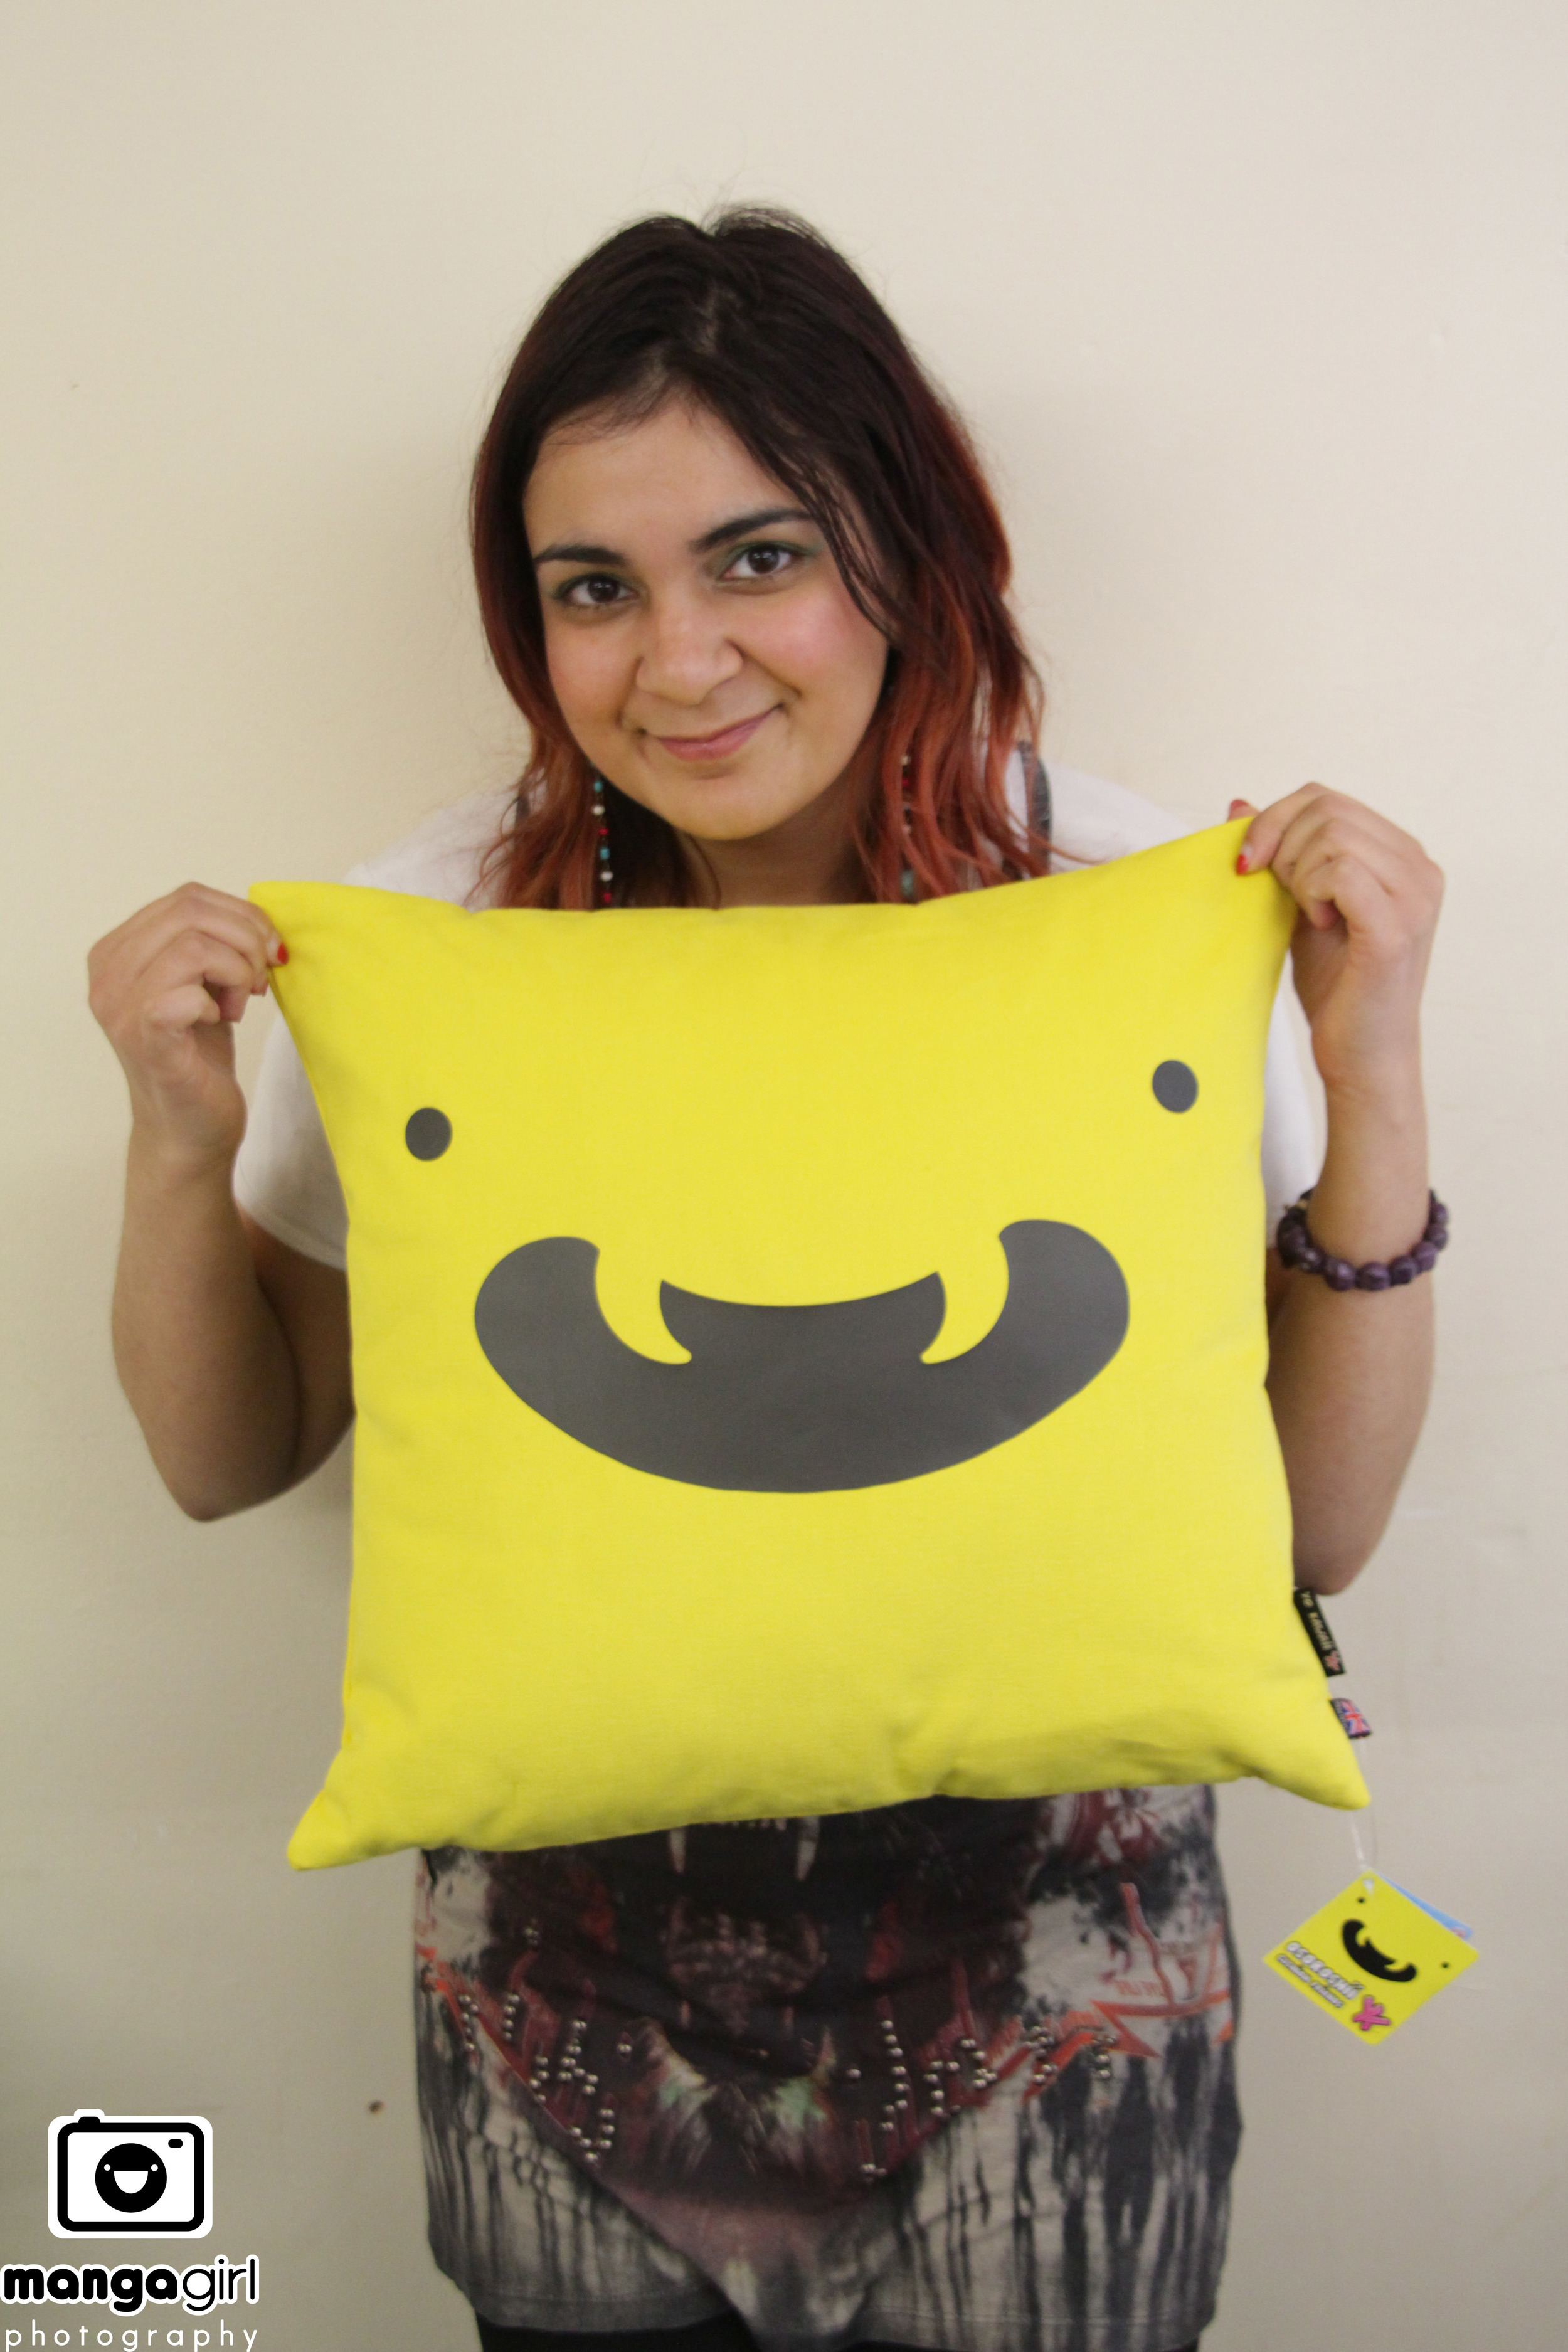 I absolutely love the colour and expression of Cushion friend Osoroshii  <3